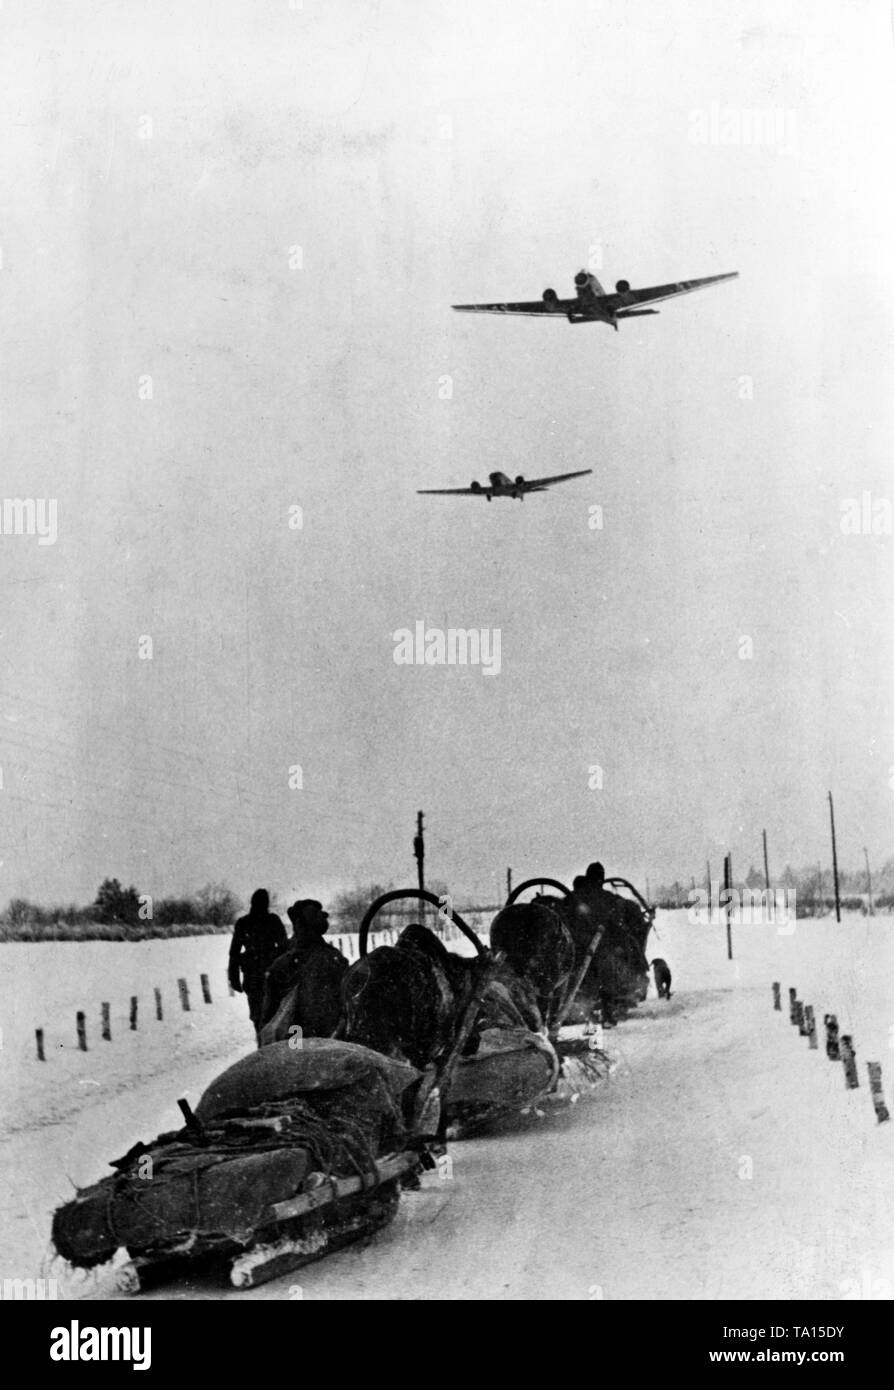 Two Junkers Ju 52 aircrafts cross German soldiers near Demjansk. The photo was taken in front of the complete encirclement and the associated airlift. Photo of the Propaganda Company (PK): war correspondent Beissel. - Stock Image